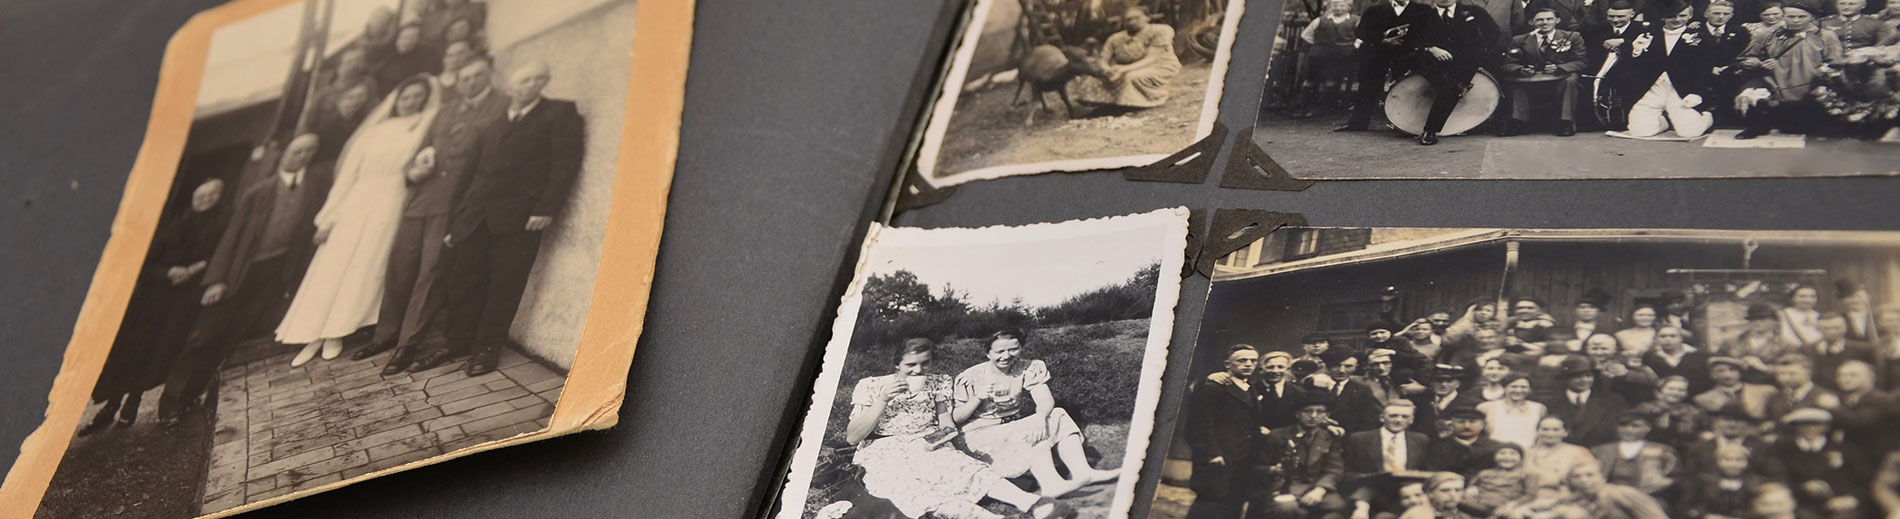 picture of photo albums